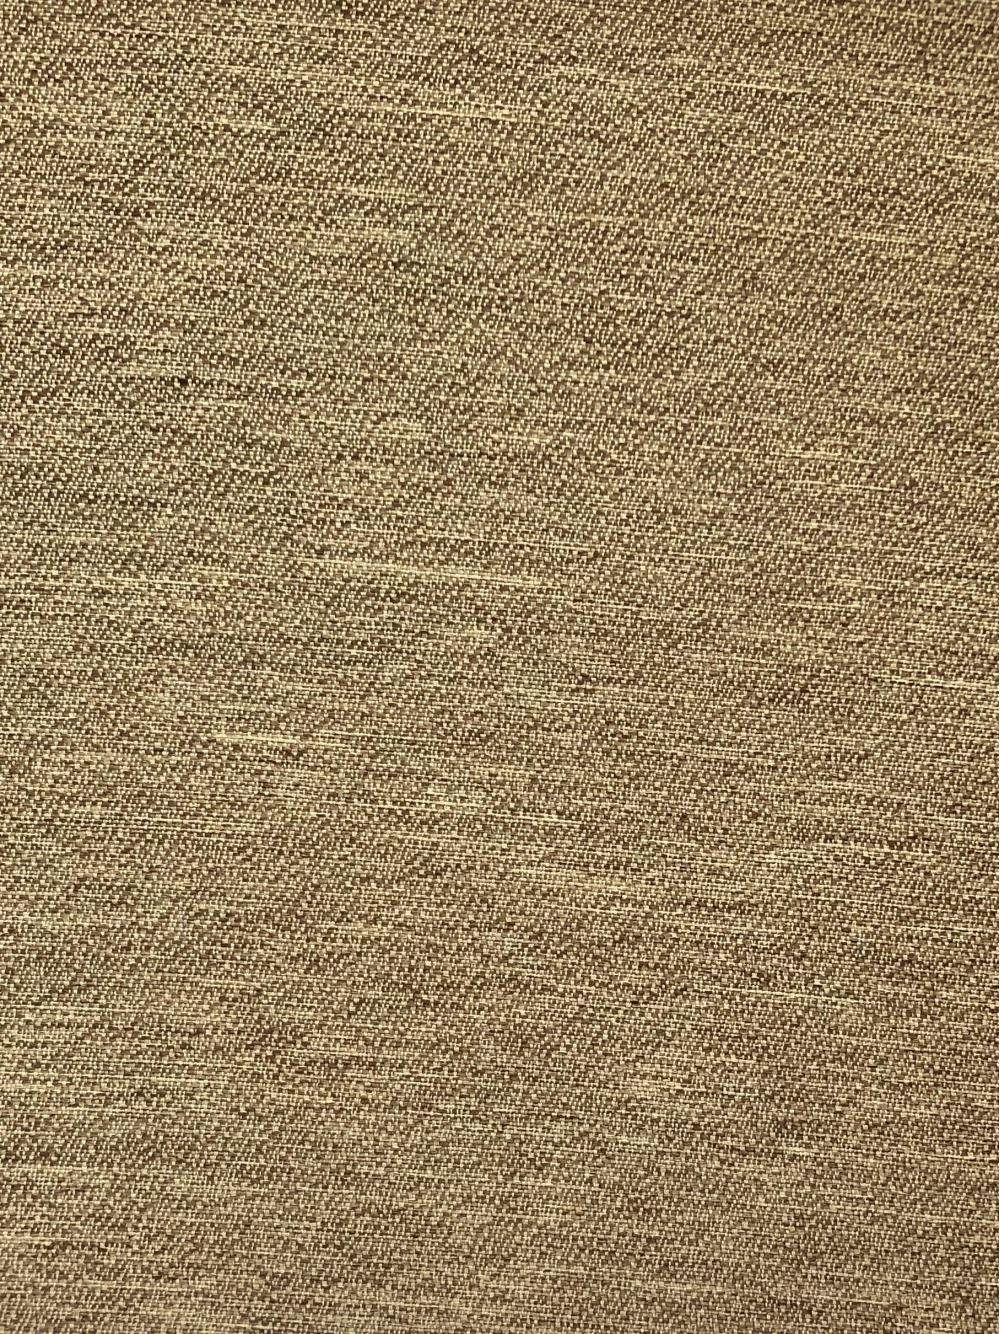 For Furniture Jacquard Style 100% Polyester Sofa Fabric